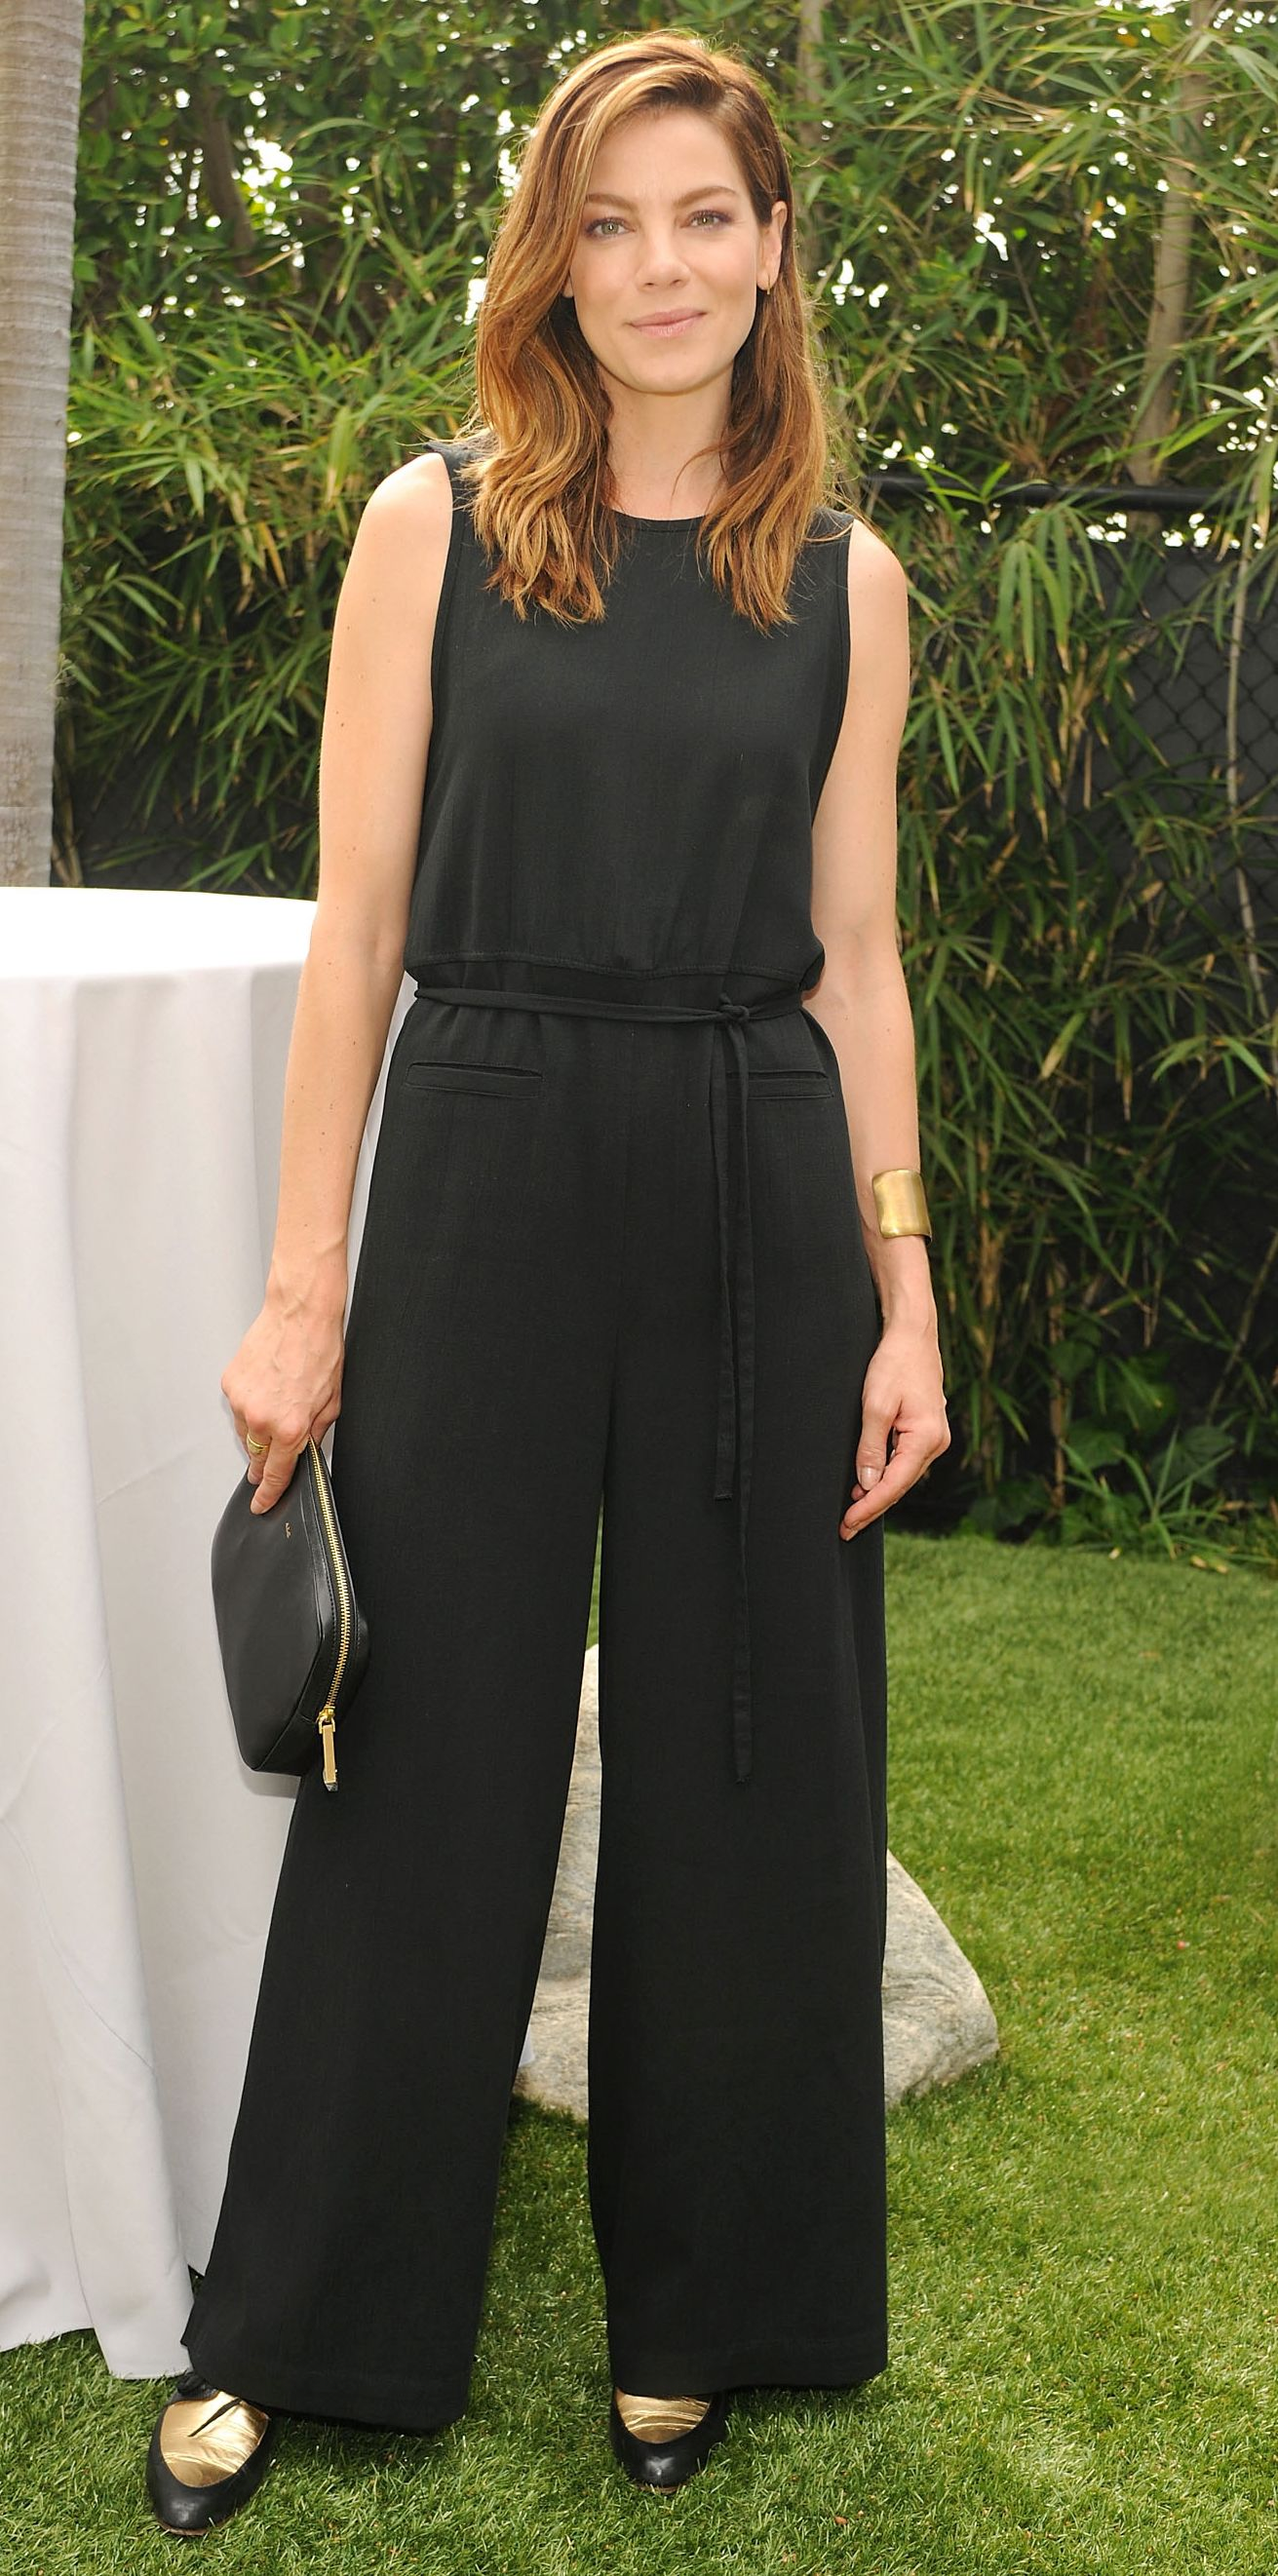 Monaghan michelle look of the day